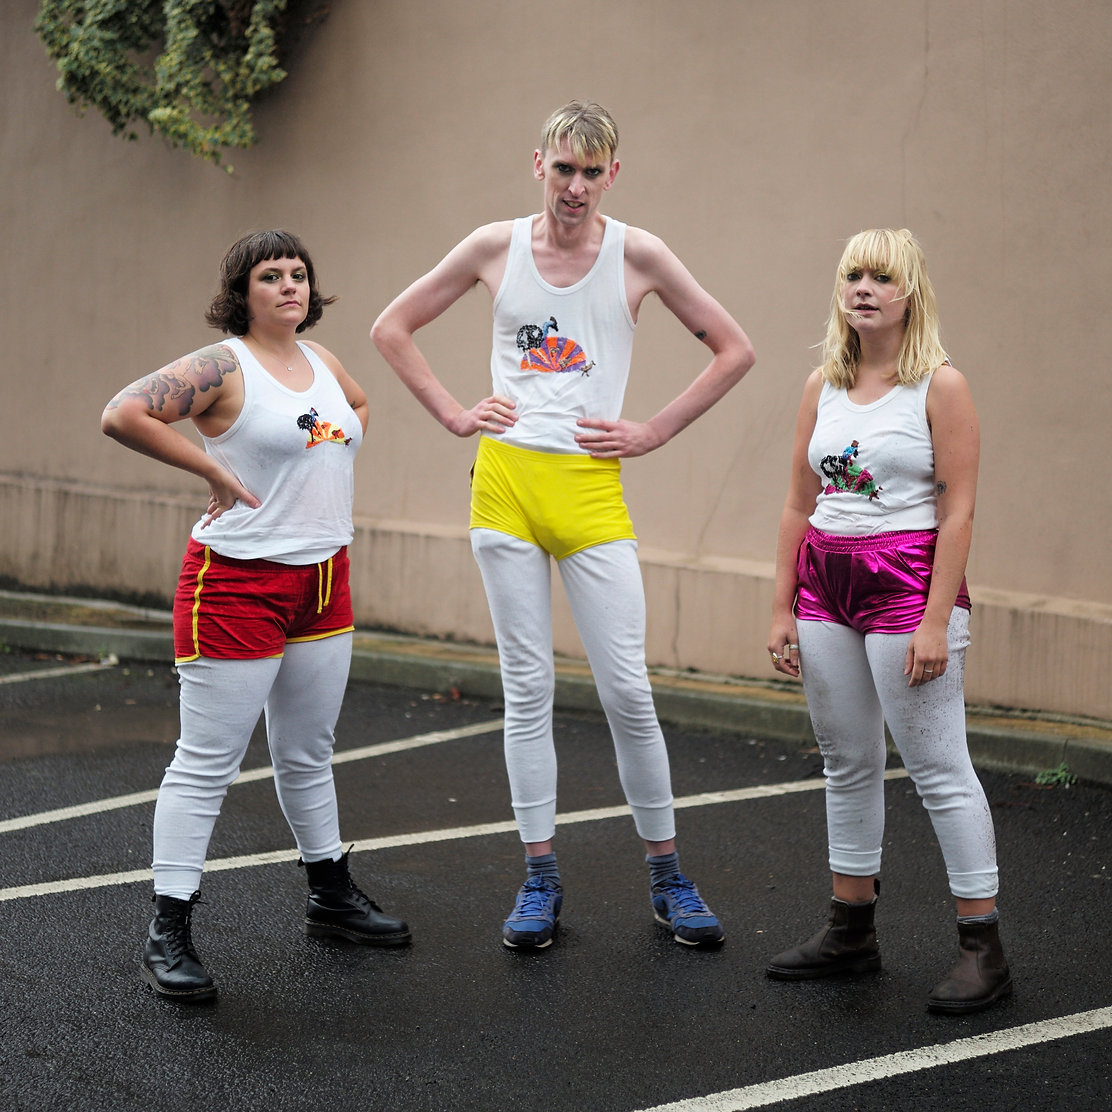 A photo of the band in a car park, Kerri on the left, Giles in the middle and Sophie on the right. They wear intense expressions, decked out in neon shorts over white leggings and vests.